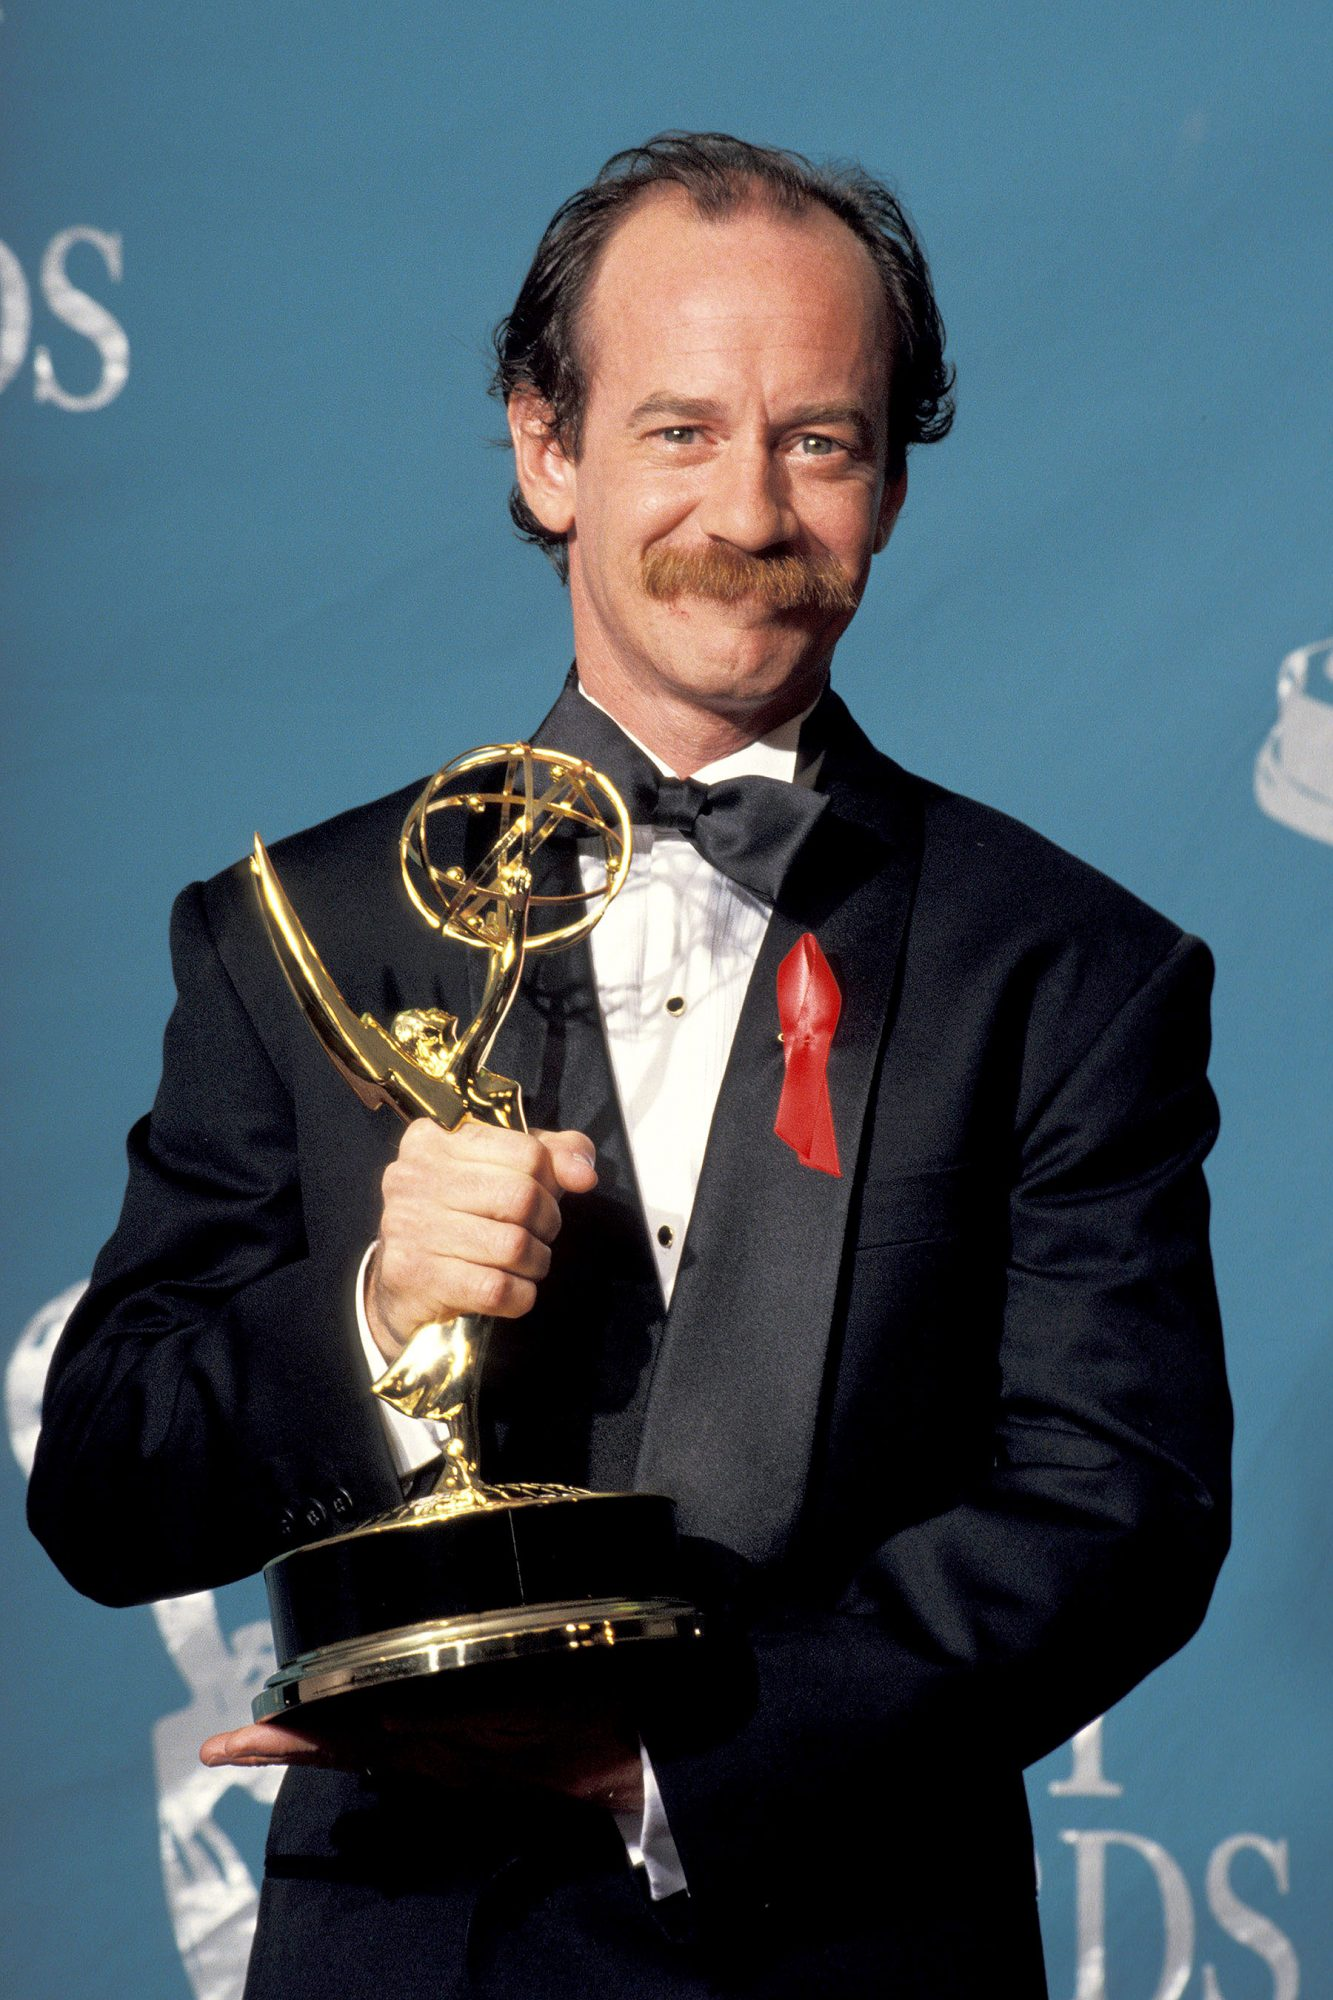 44th Annual Emmy Awards